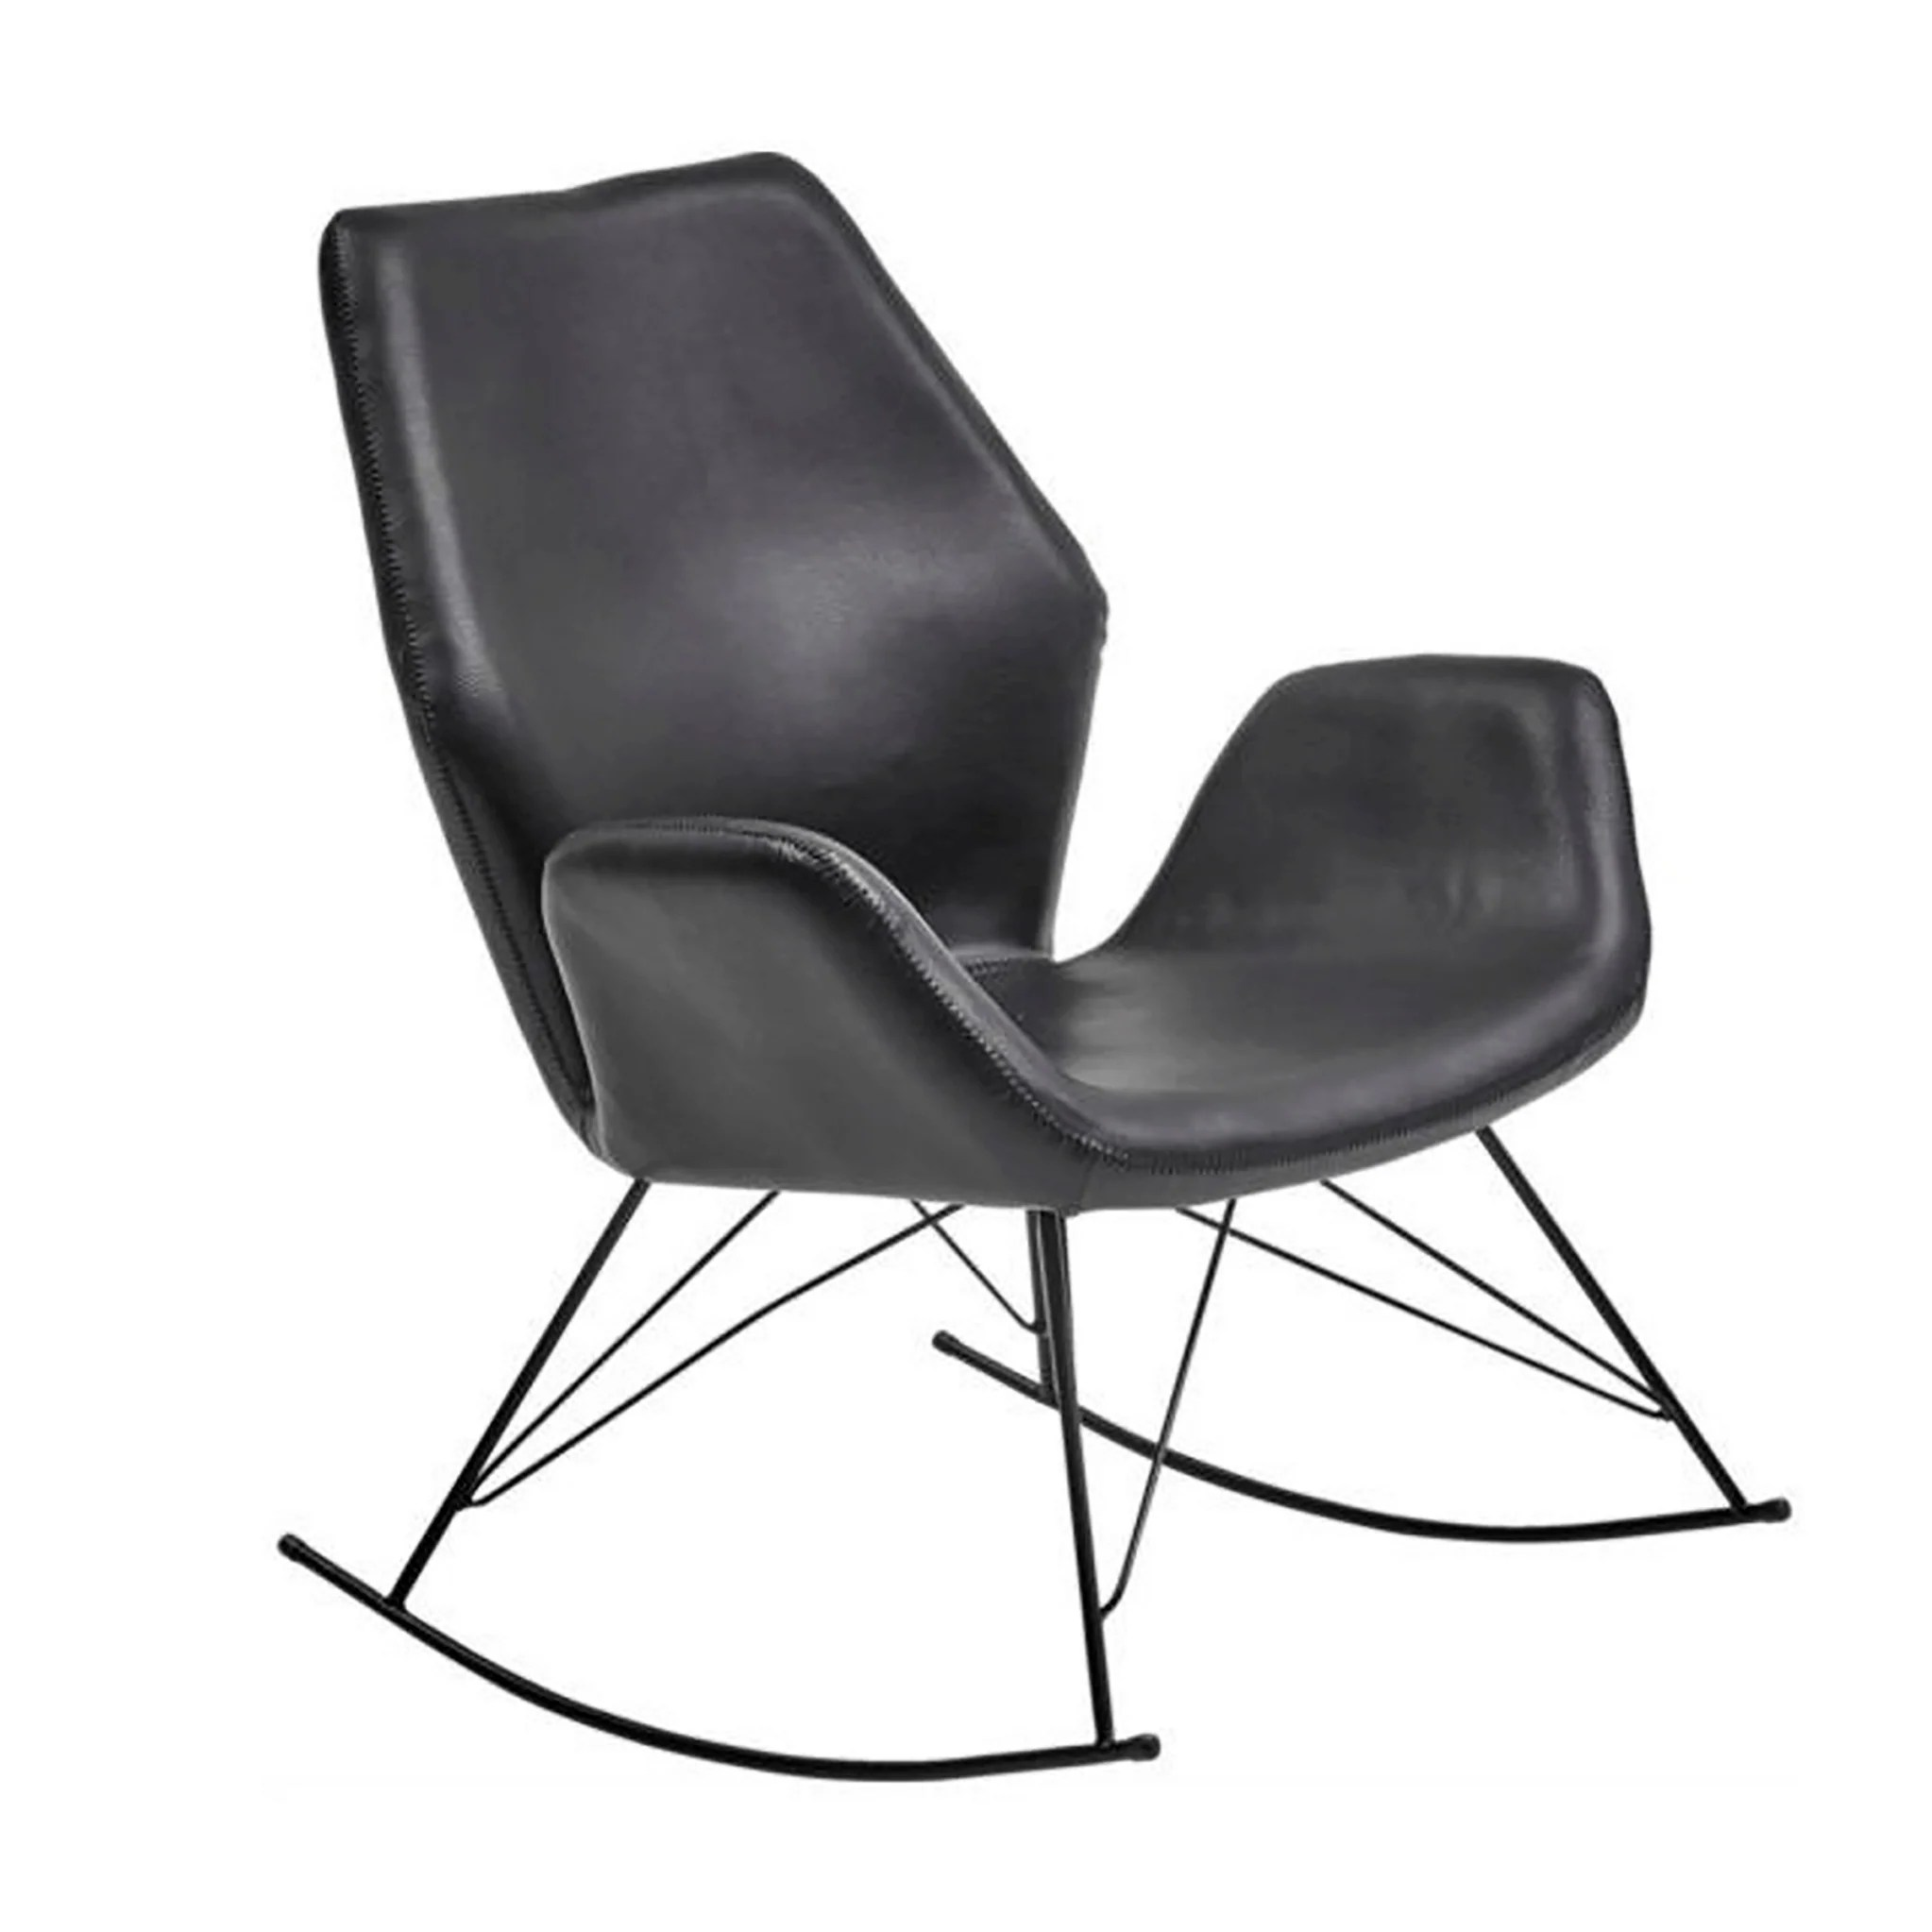 Leather Rocking Chair Bryce Accent Rocking Chair Black Leather